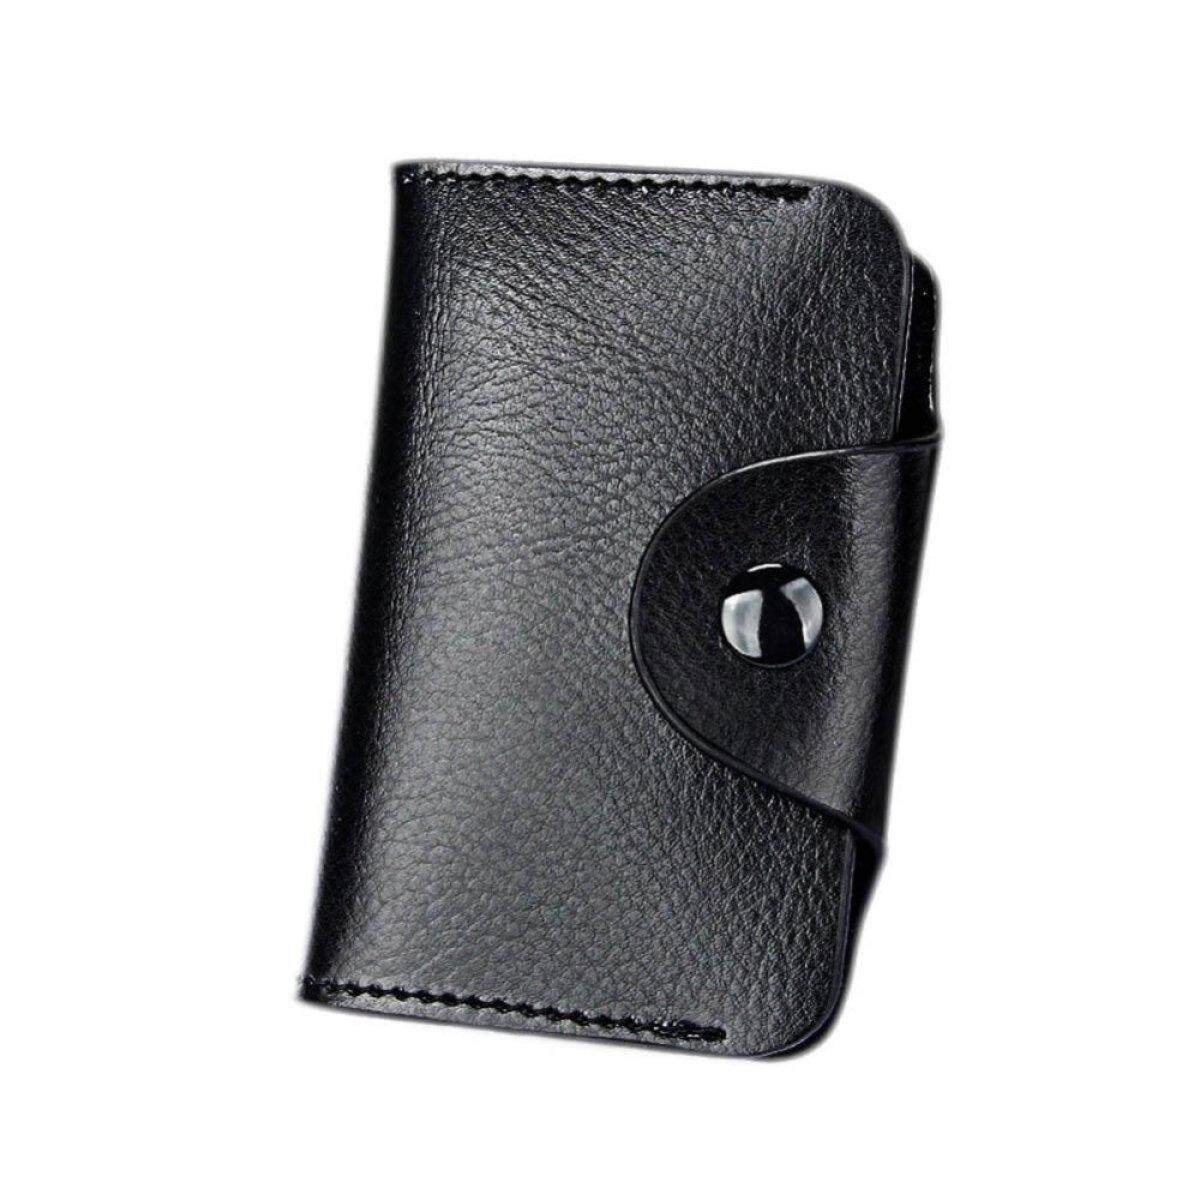 Kuhong Genuine Leather Aluminum Wallet RFID Blocking Pocket Holder Credit Card Case - intl